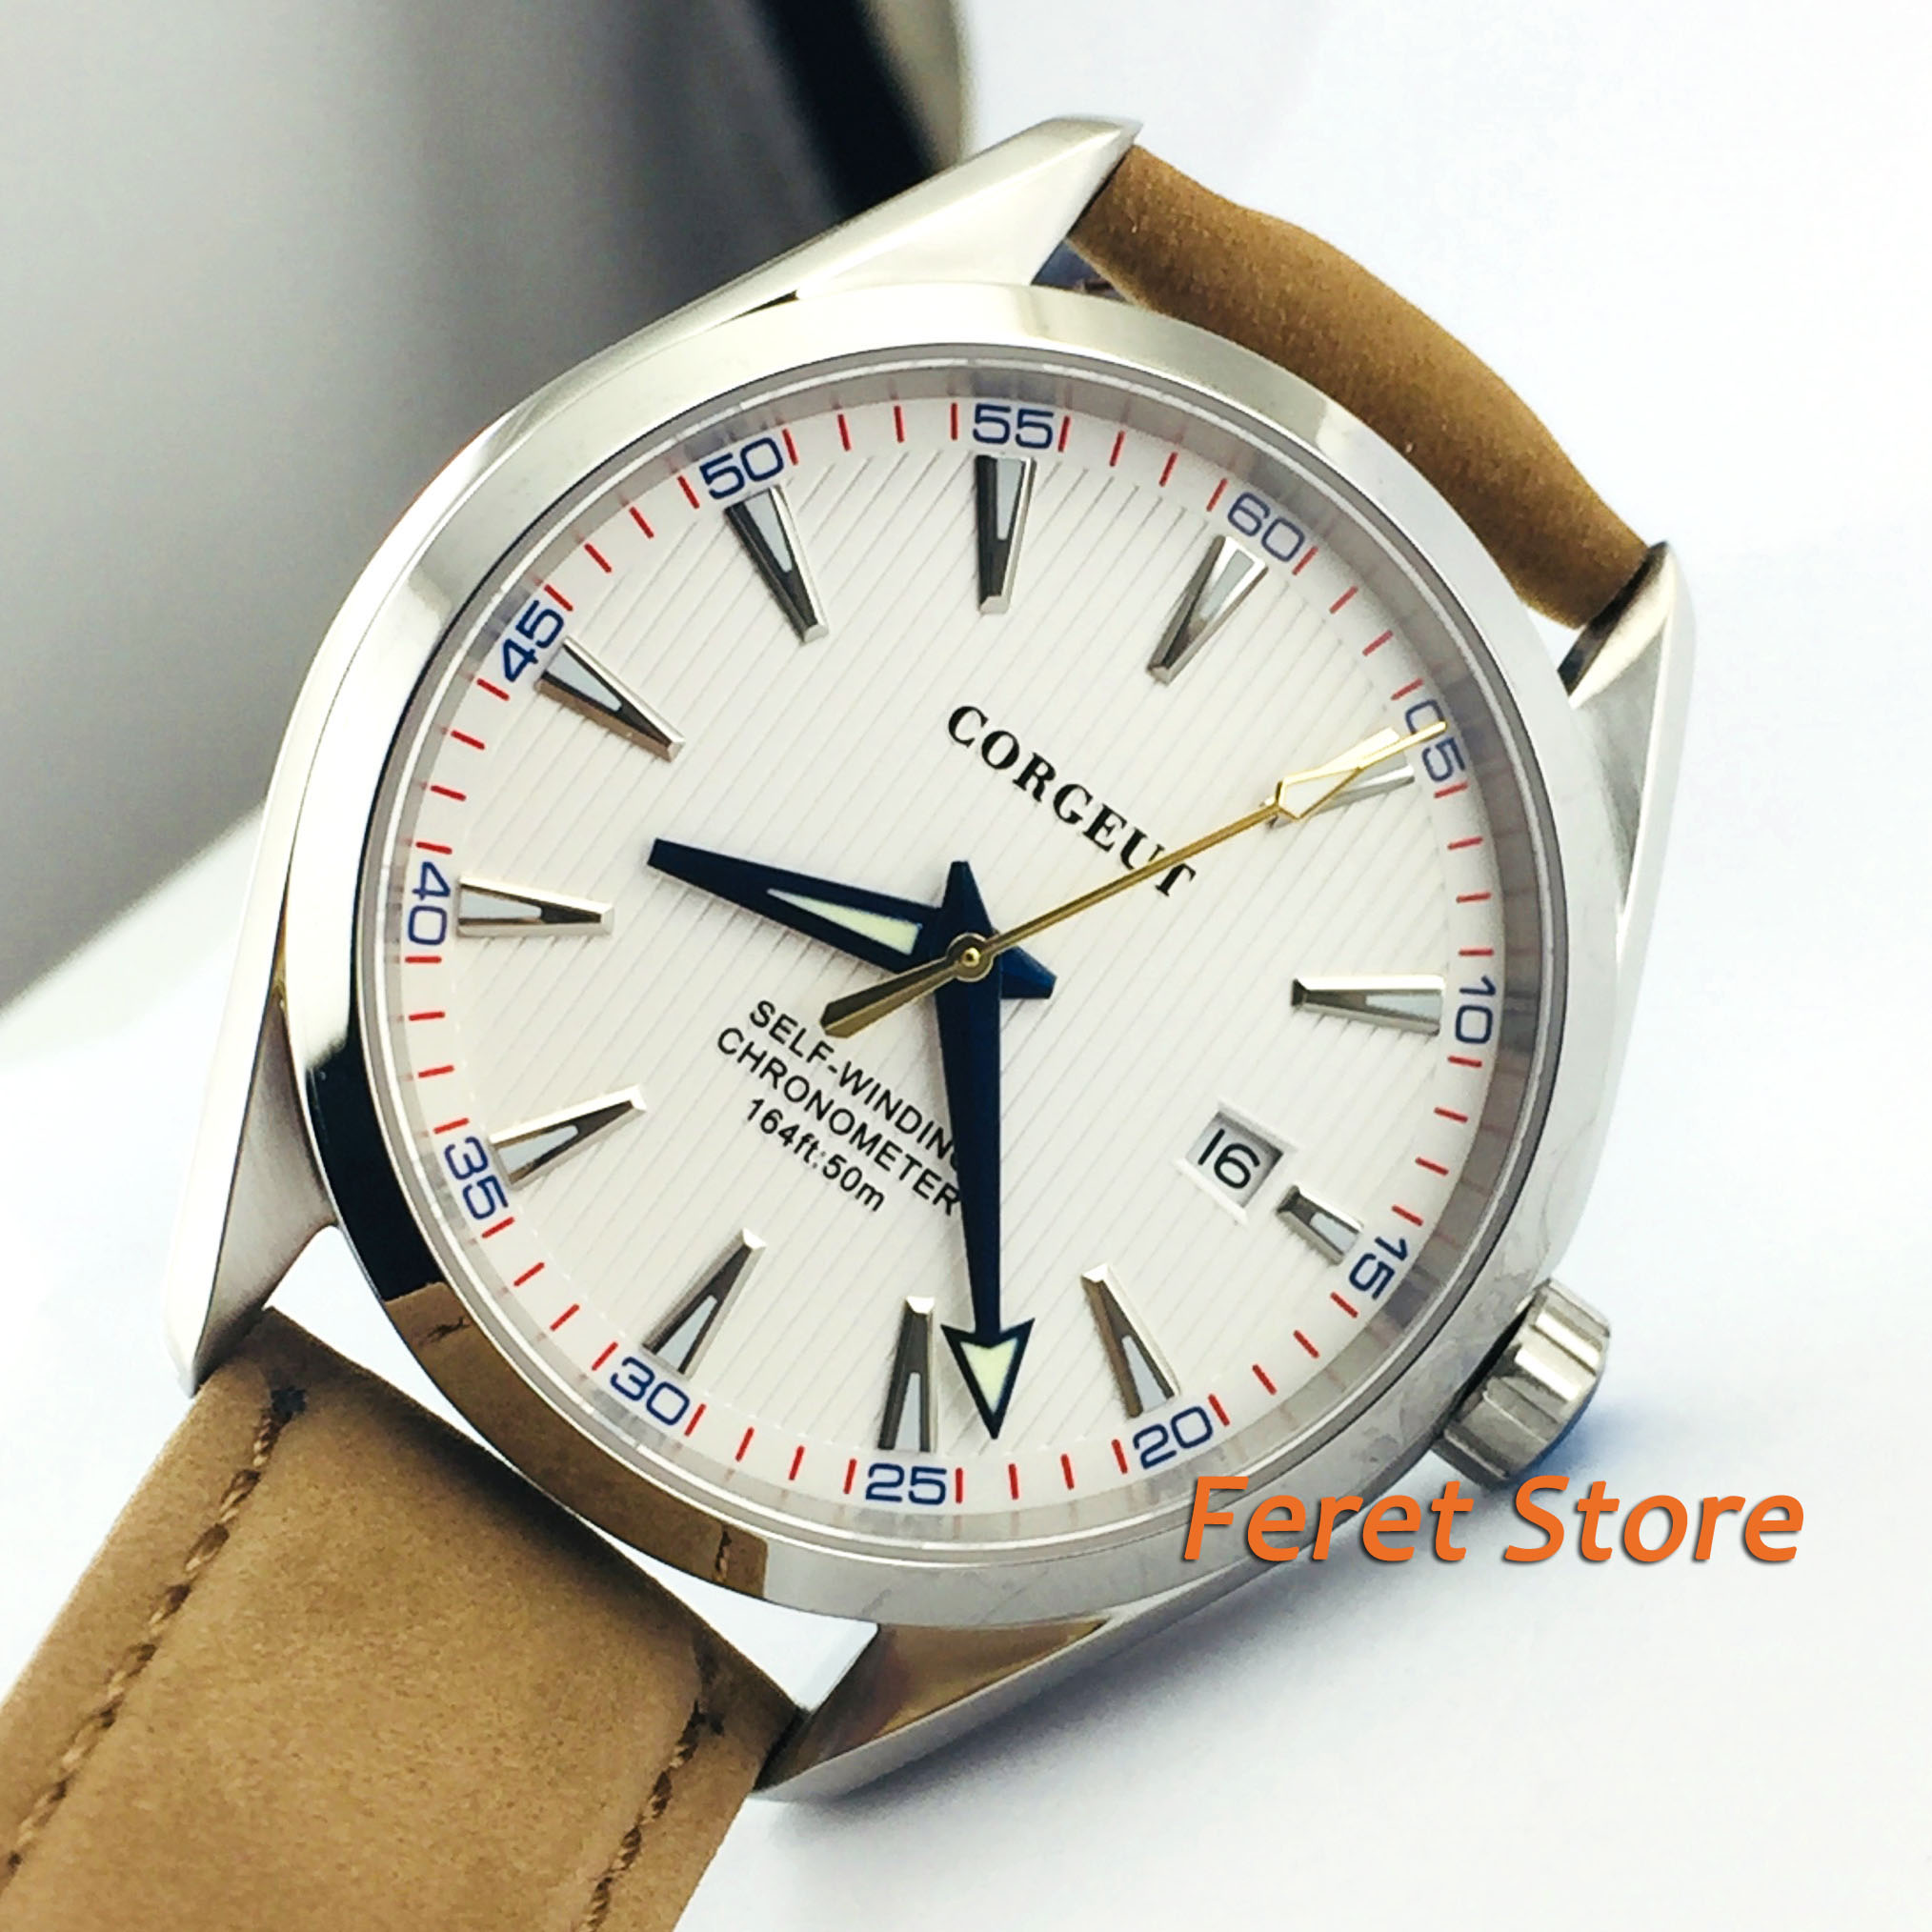 Corgeut 41mm men's watch white dial silver marks sapphire glass Polished case 5ATM water resistance Automatic watch c15